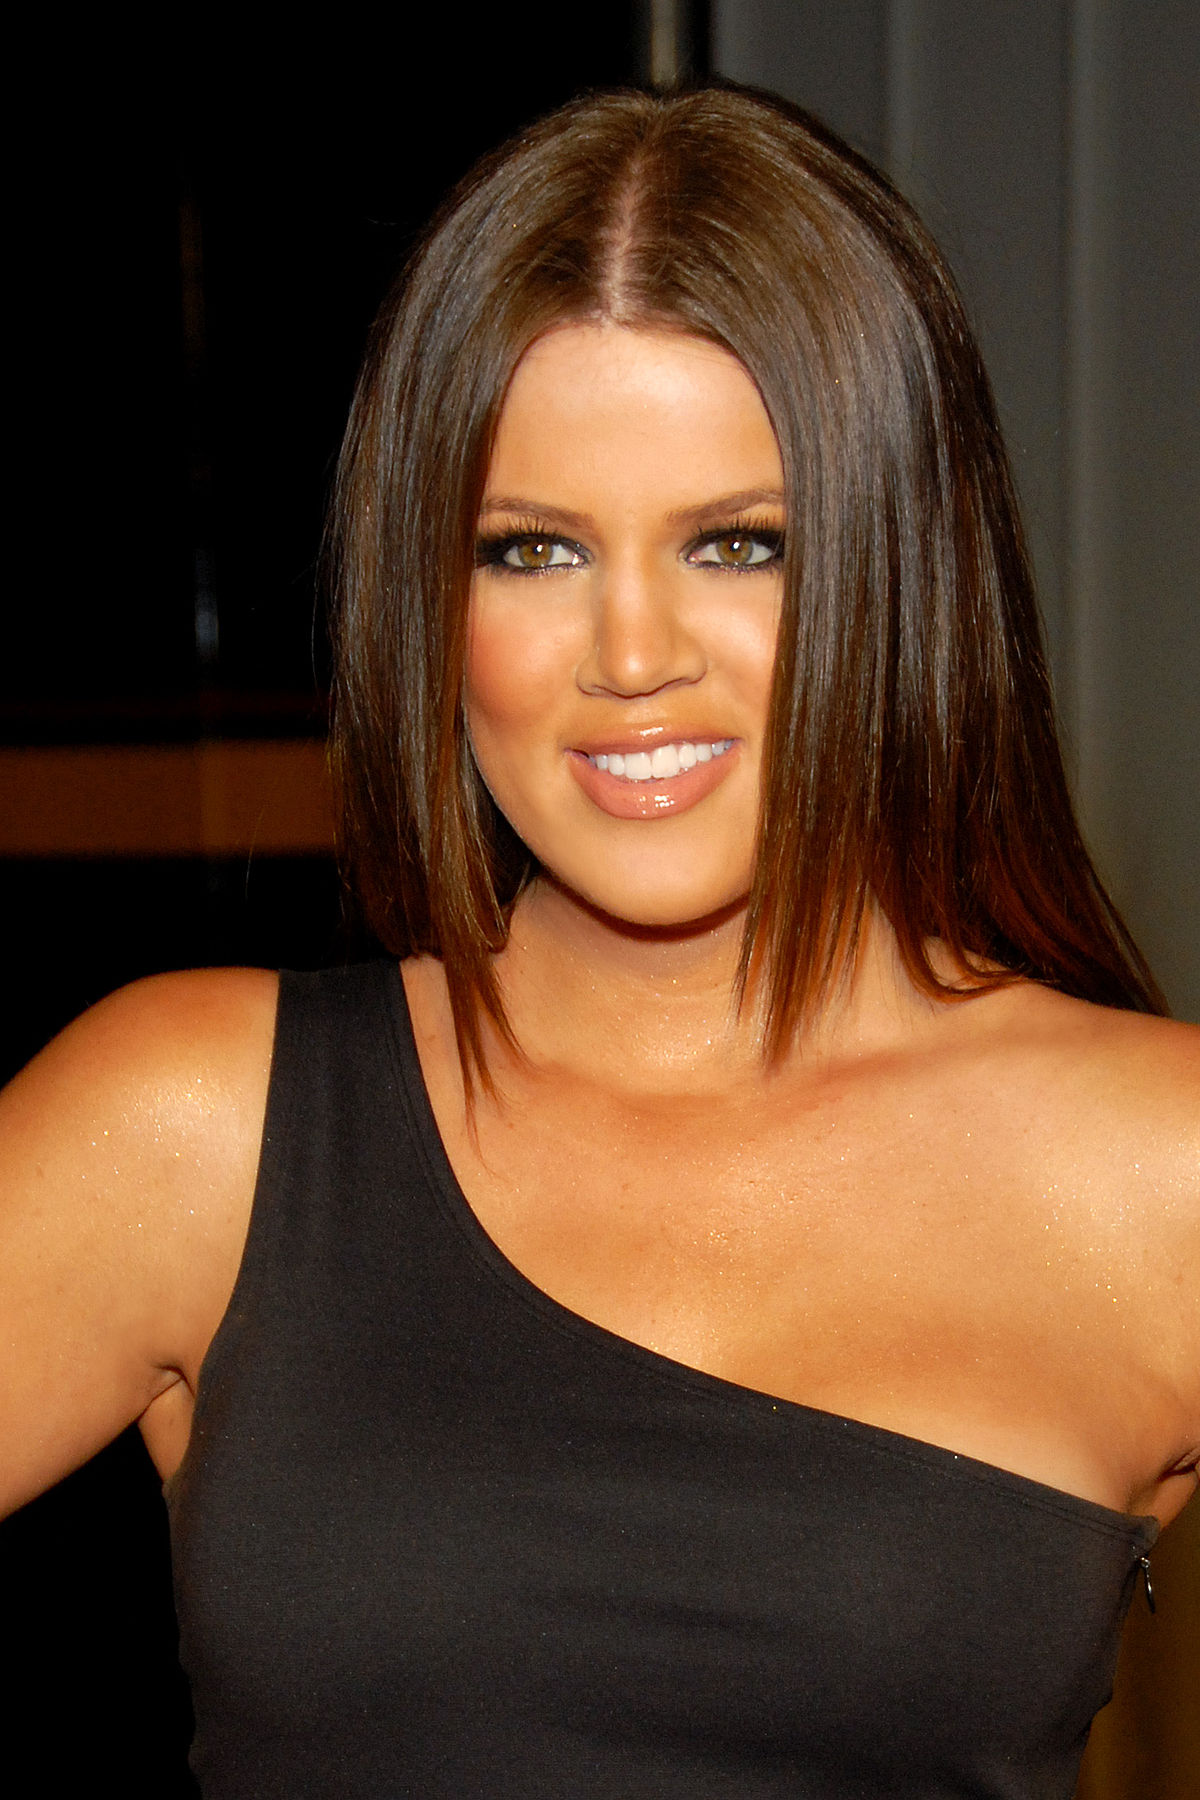 khloe kardashian - photo #5